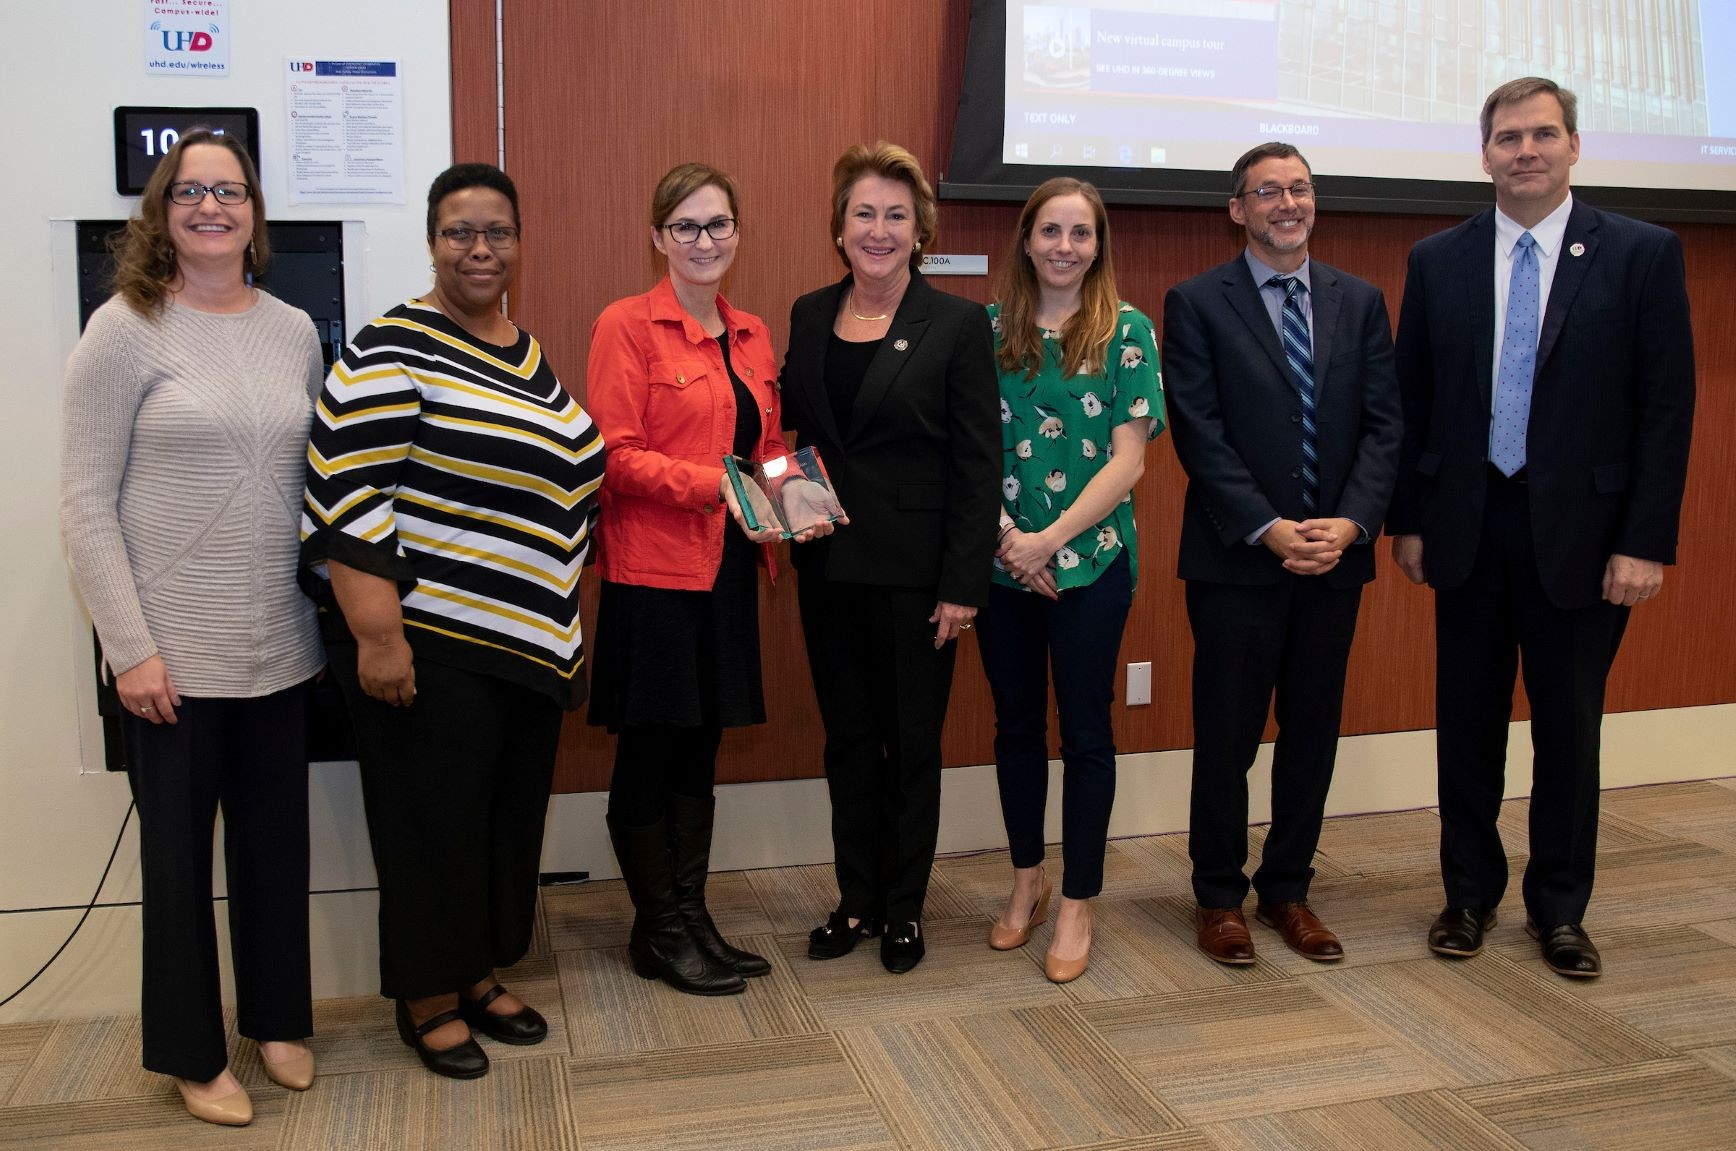 Award Presentation at UHD's College of Public Service